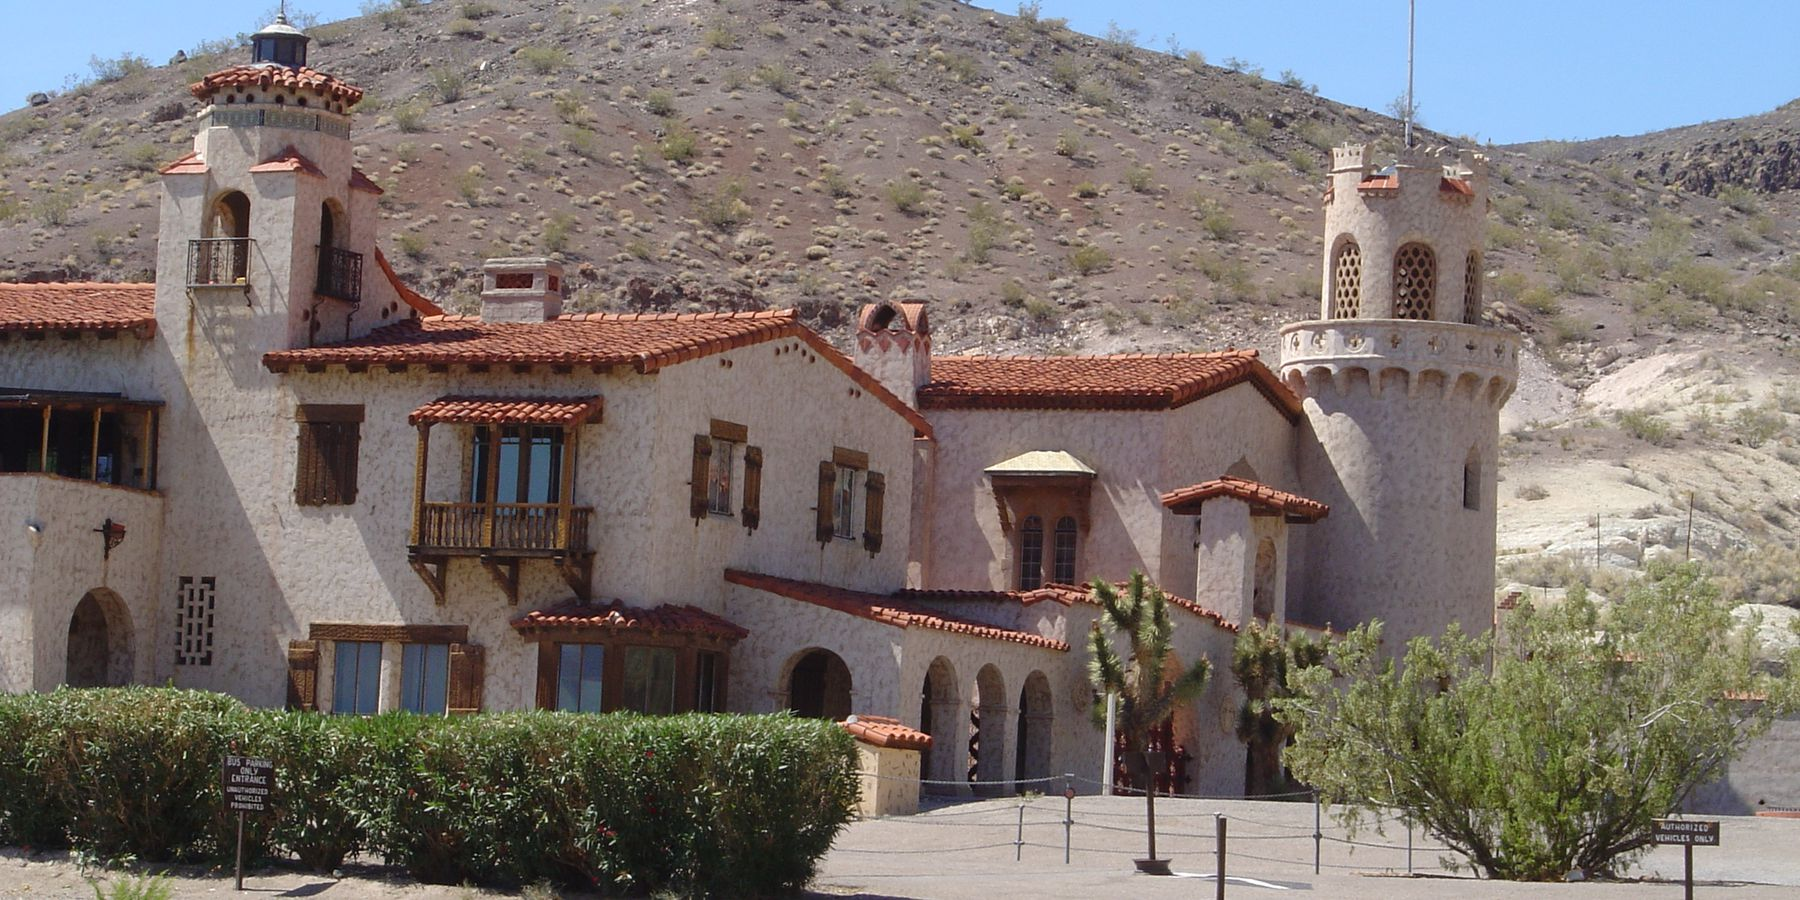 Scotty's Castle - Dead Valley - California - Amerika - Doets Reizen